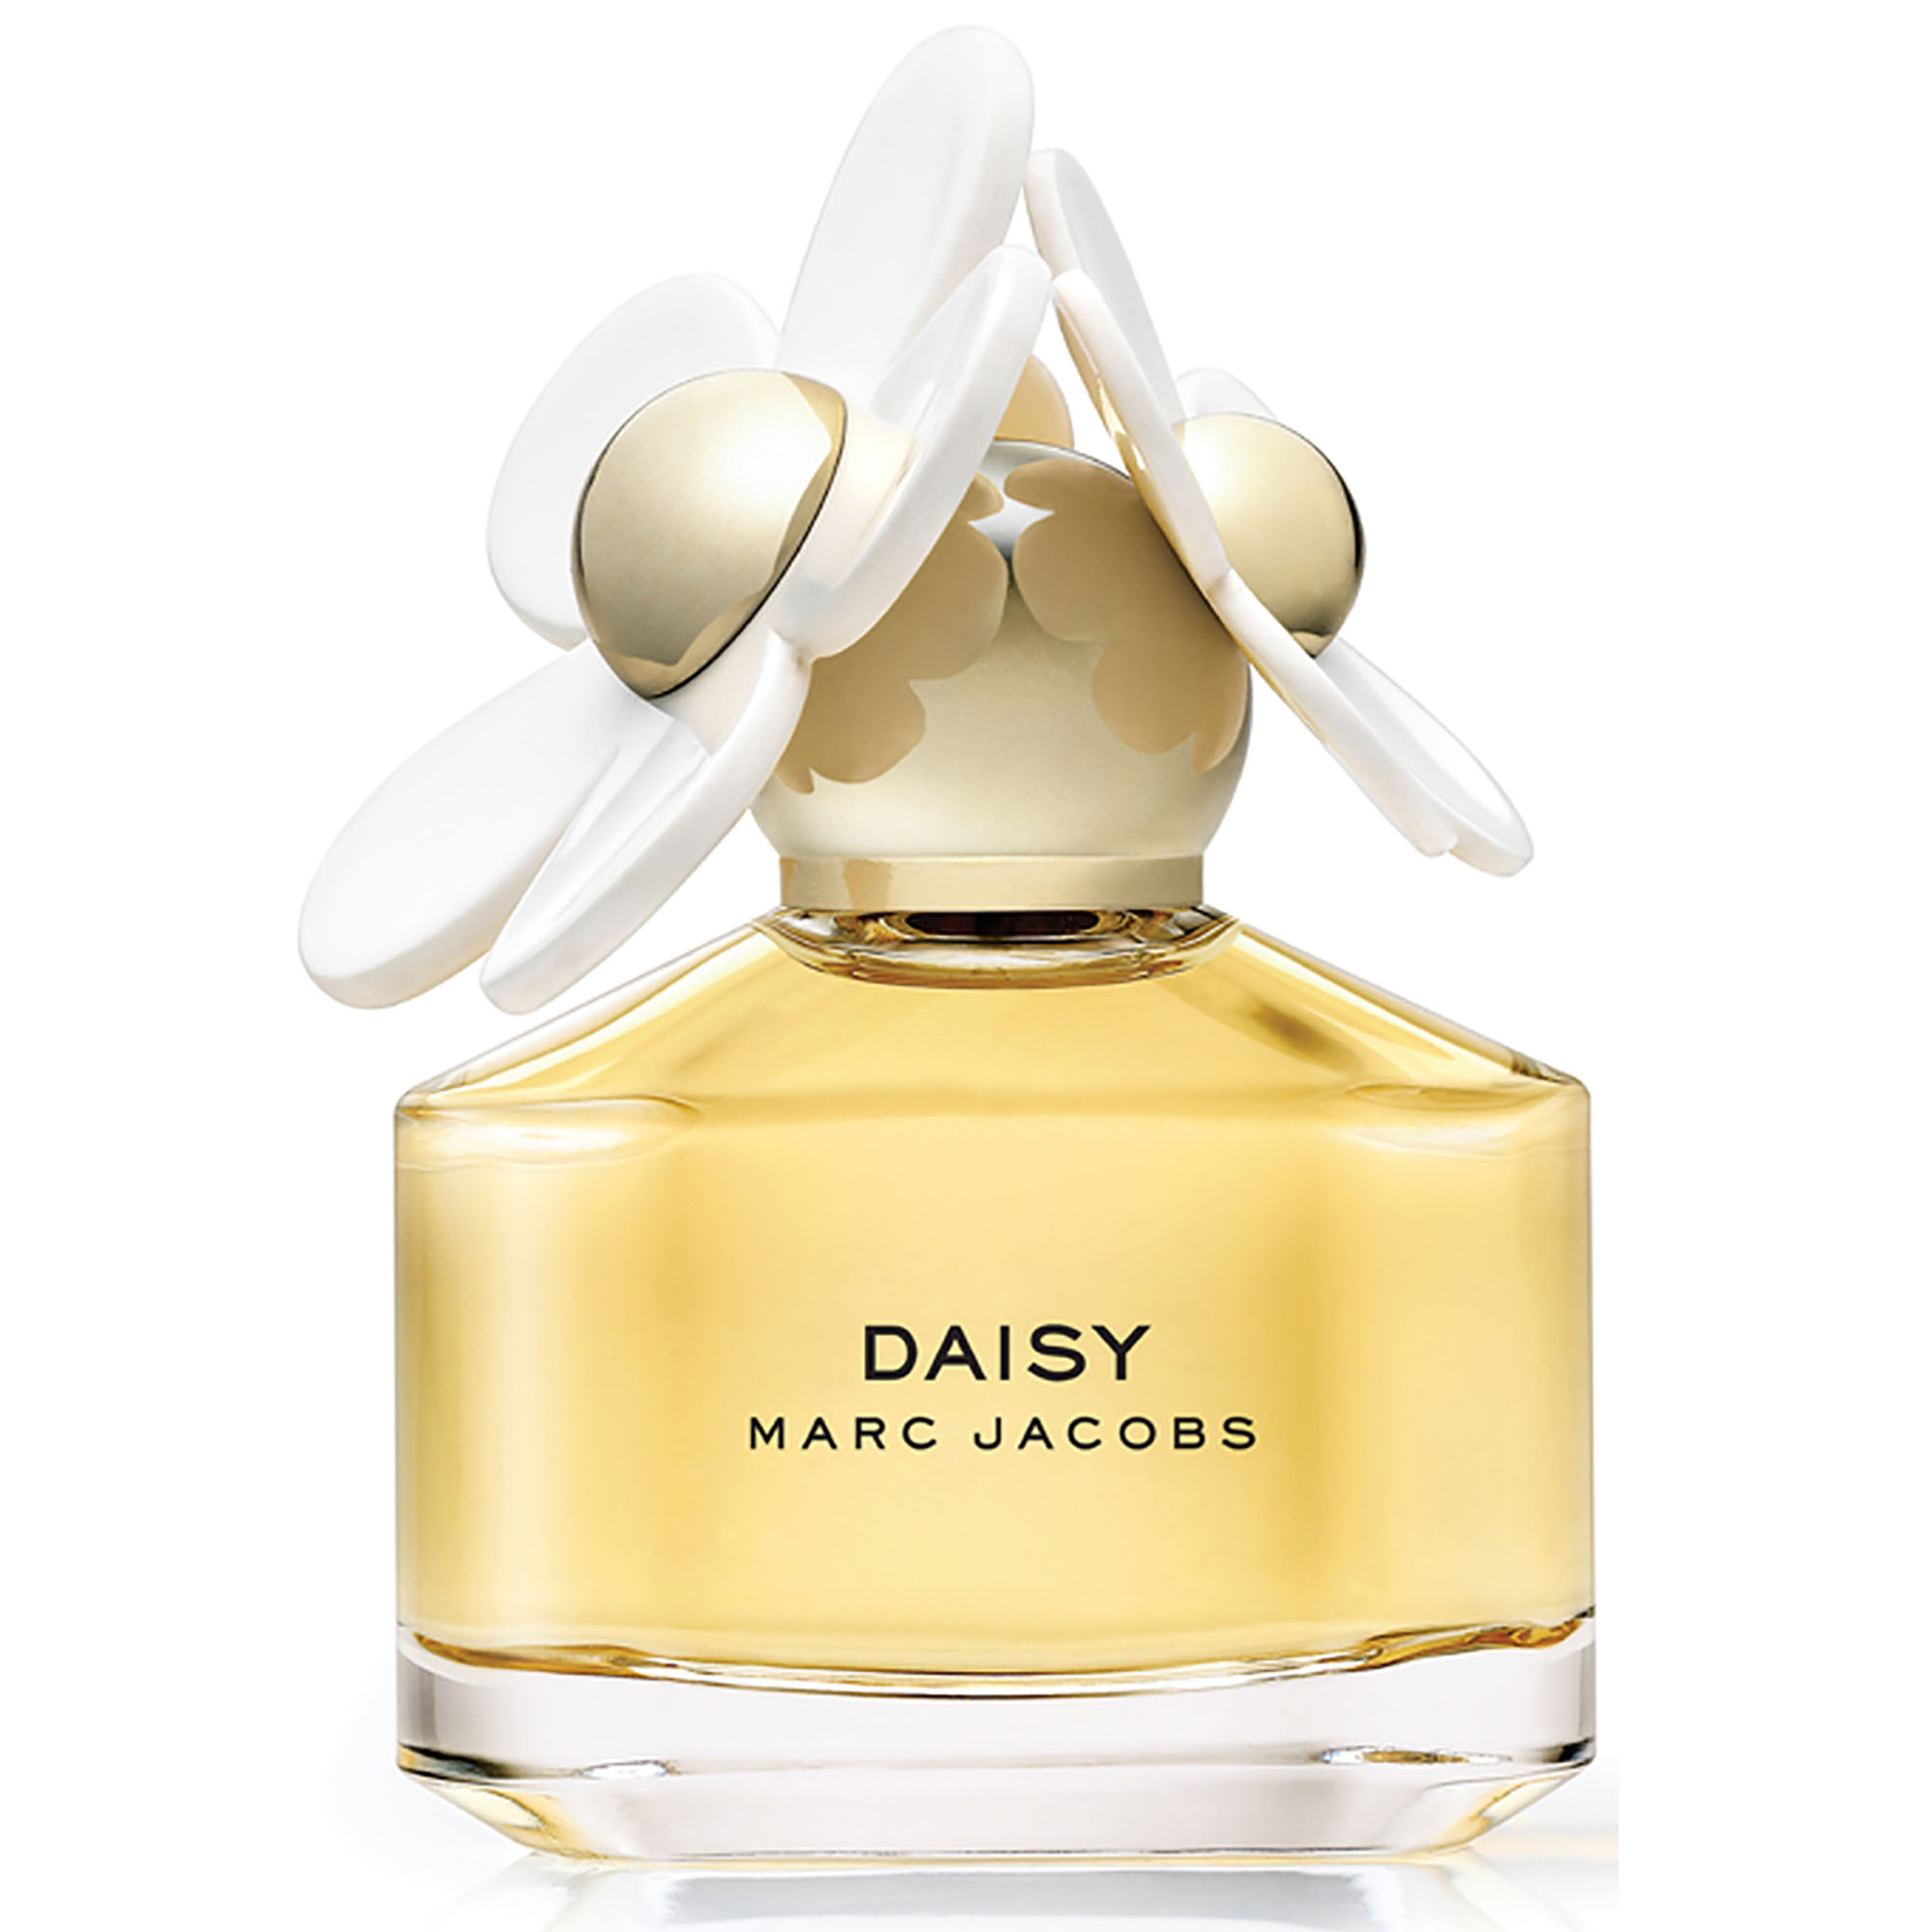 Marc Jacobs Daisy Eau De Toilette Spray, Perfume for Women, 1.7 Oz